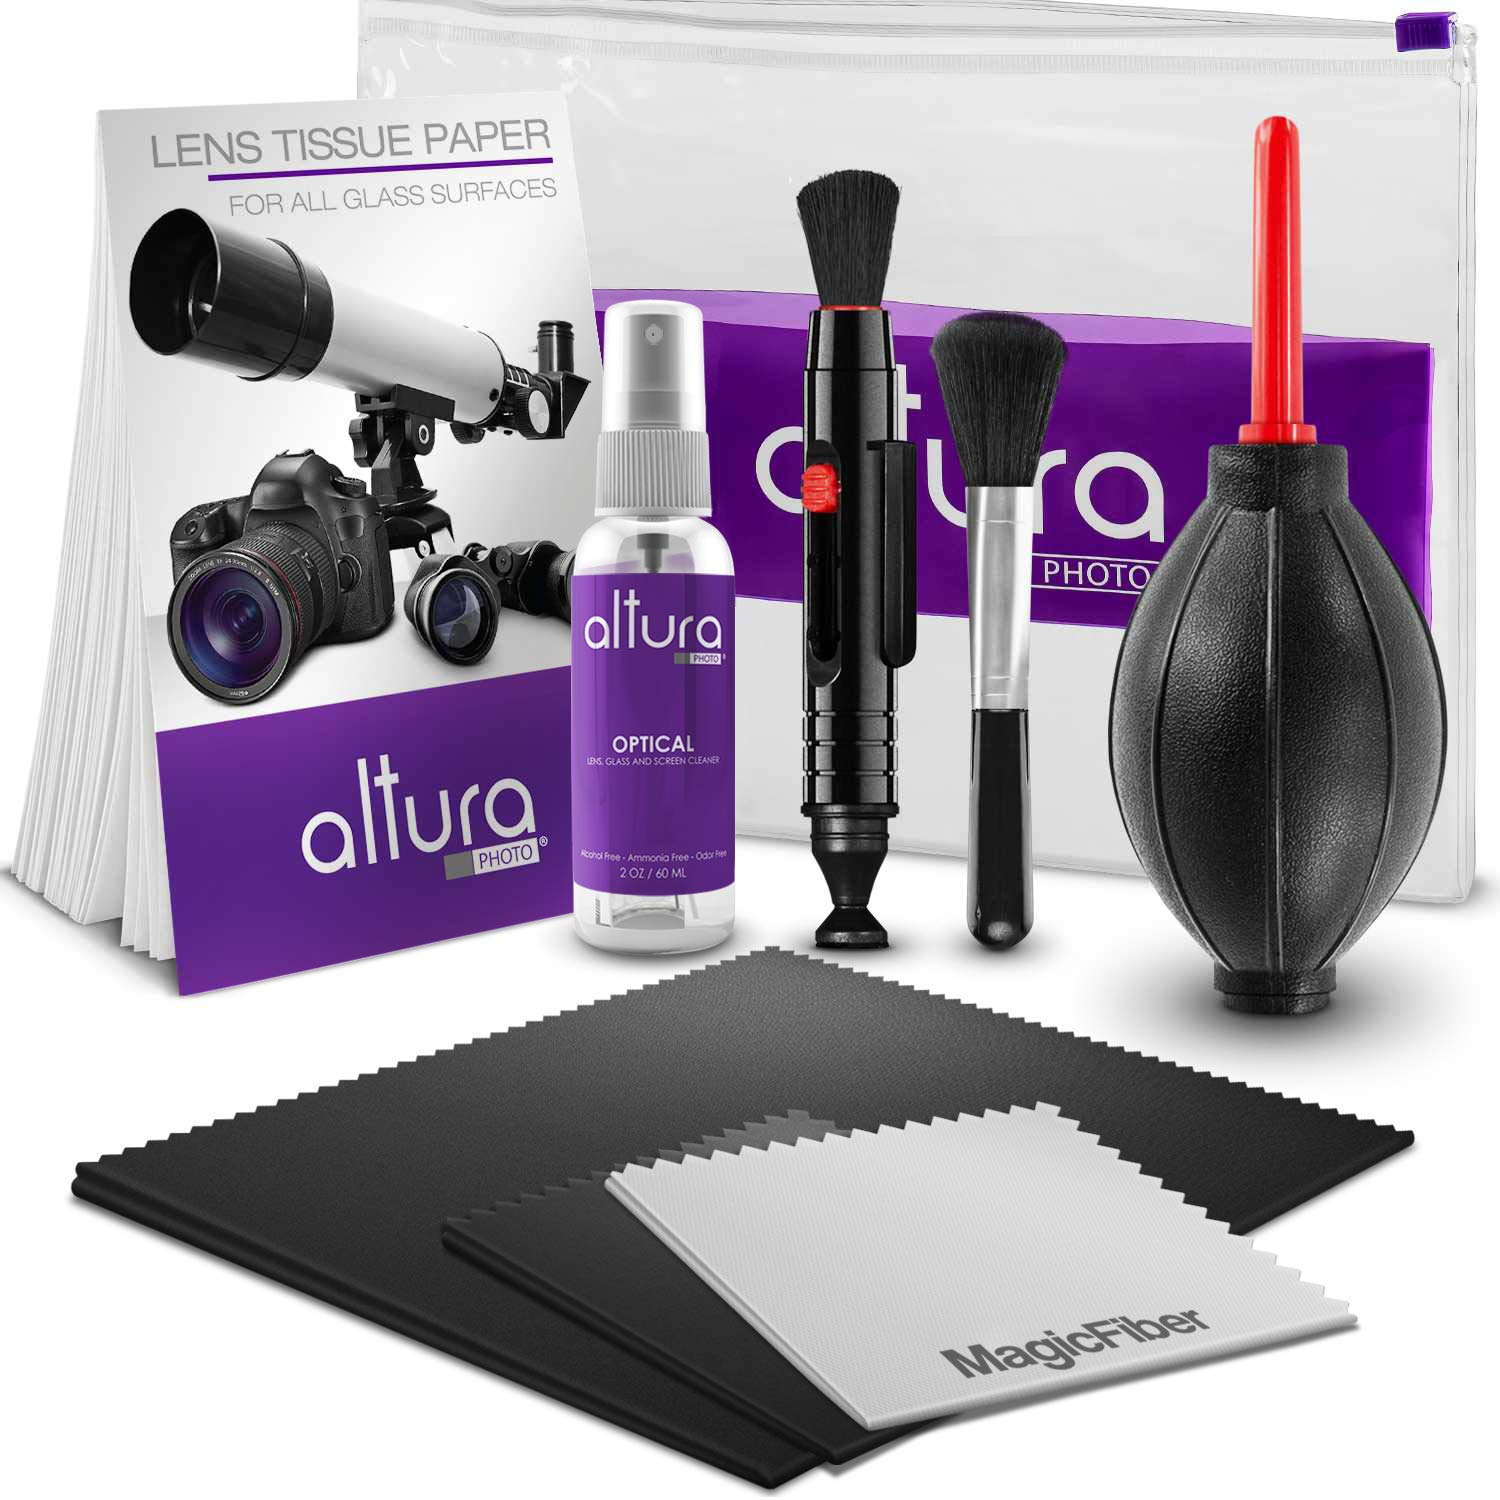 Altura Photo Professional Cleaning Kit for DSLR Cameras and Sensitive Electronics Bundle with 2oz Altura Photo Spray Lens and LCD Cleaner by Altura Photo